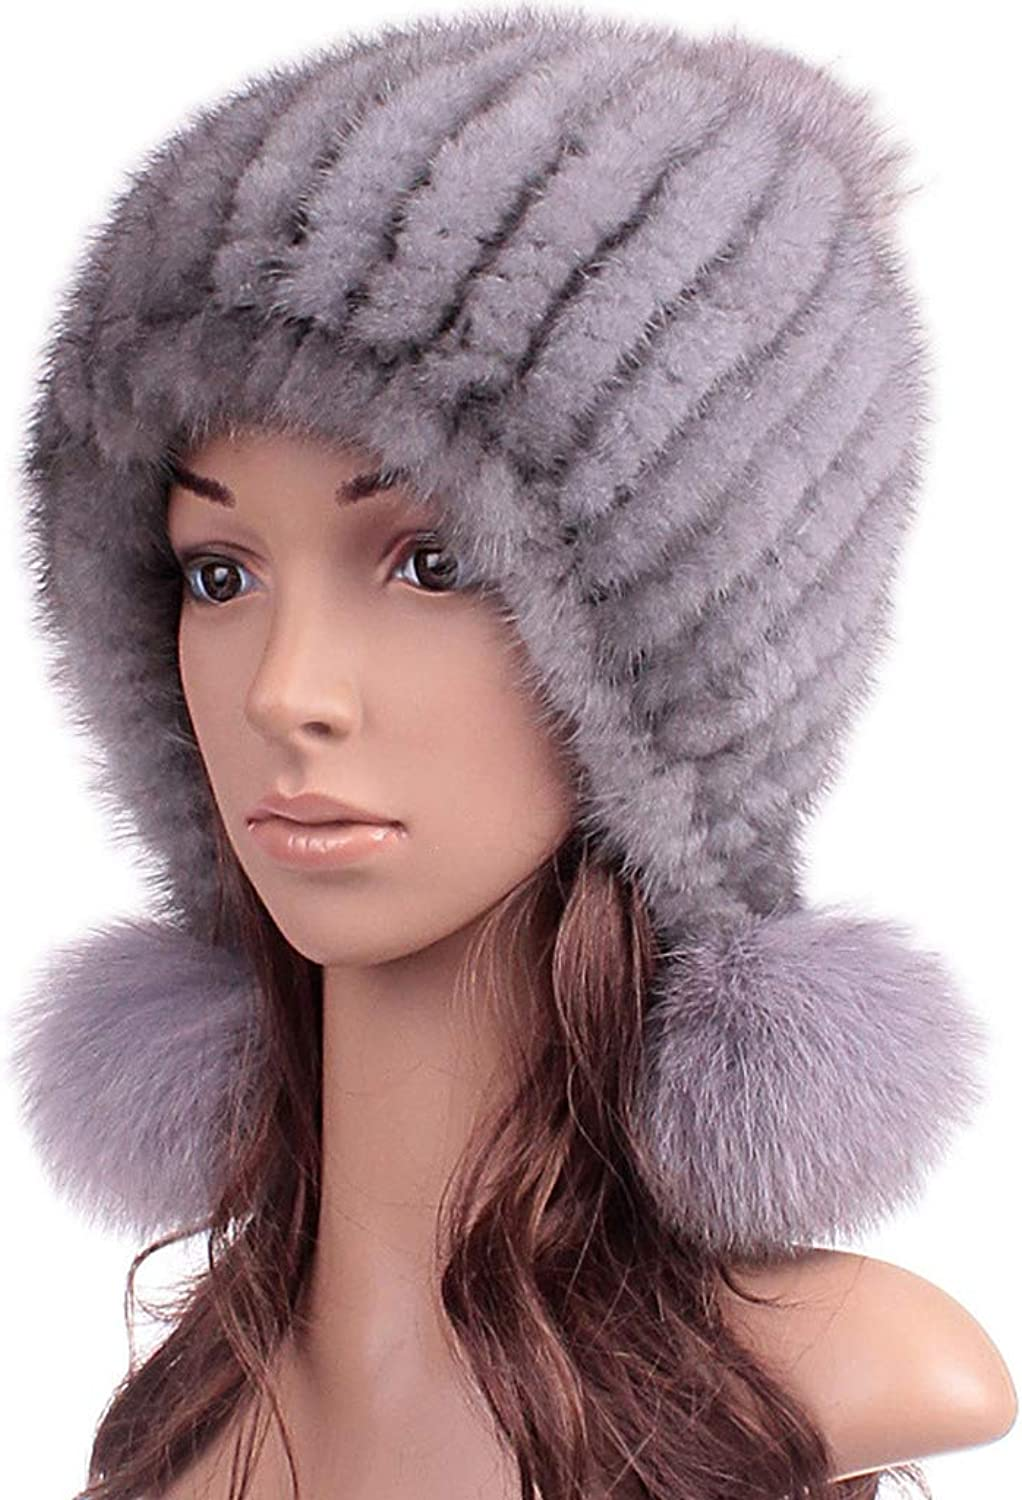 ClimbUp Womens Mink Fur Knit Hat with Earflap Winter Hats Beanie Winter Skull Cap